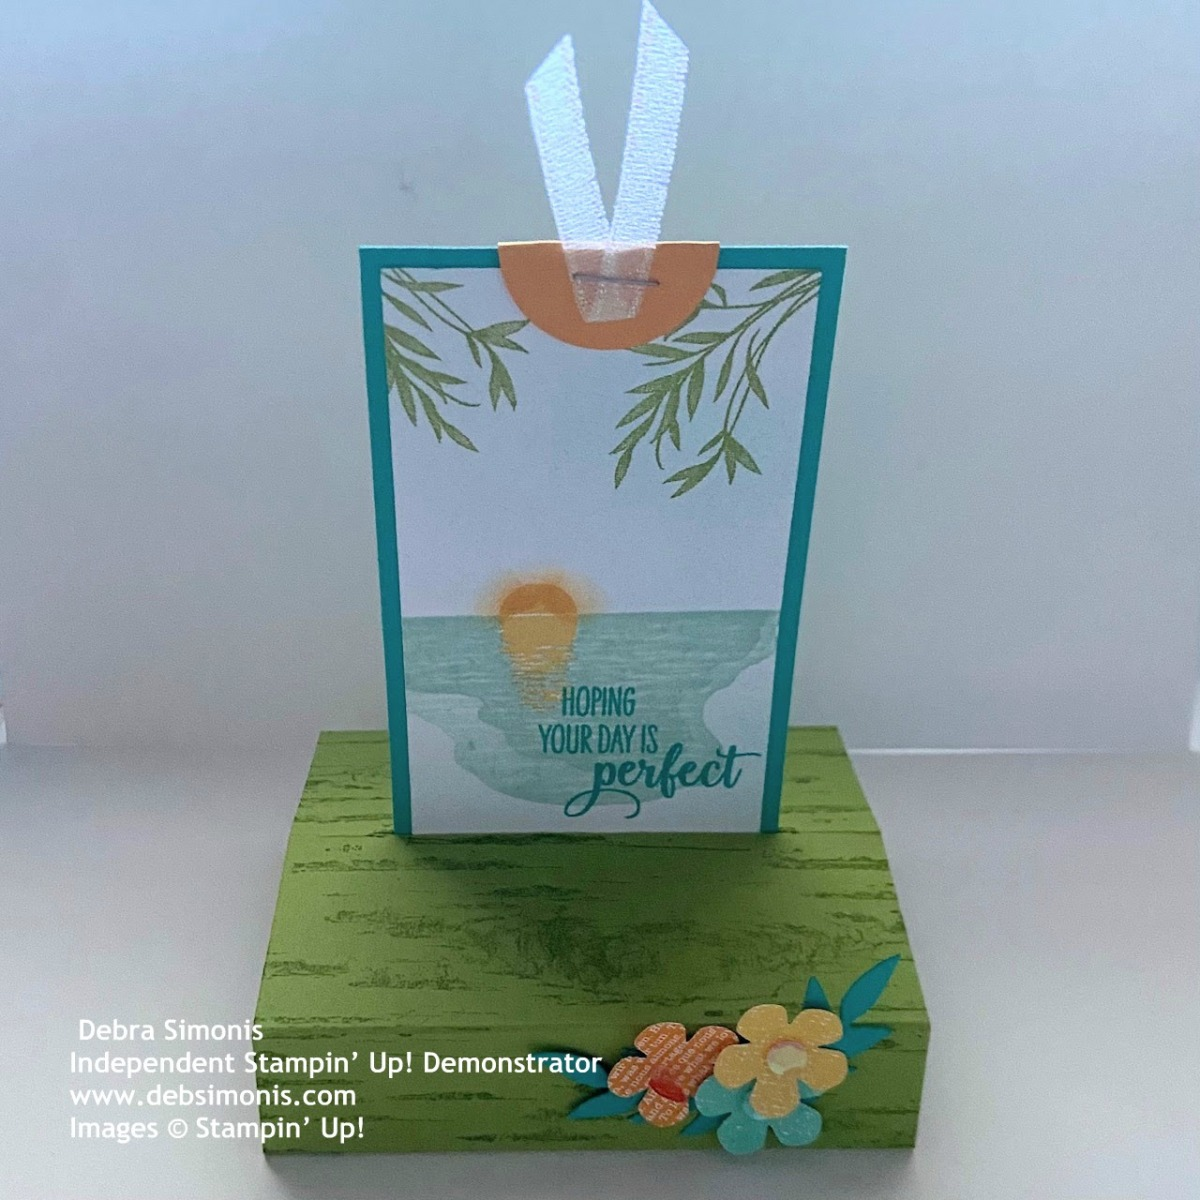 Stampin-Up-Sending-‏Birch-Background-Stamp-Small-Bloom-Punch-birthday-card-tropical-theme-fancy-fold-card-Free-Standing-Pop-Up-Card-Debra-Simonis-Stampinup